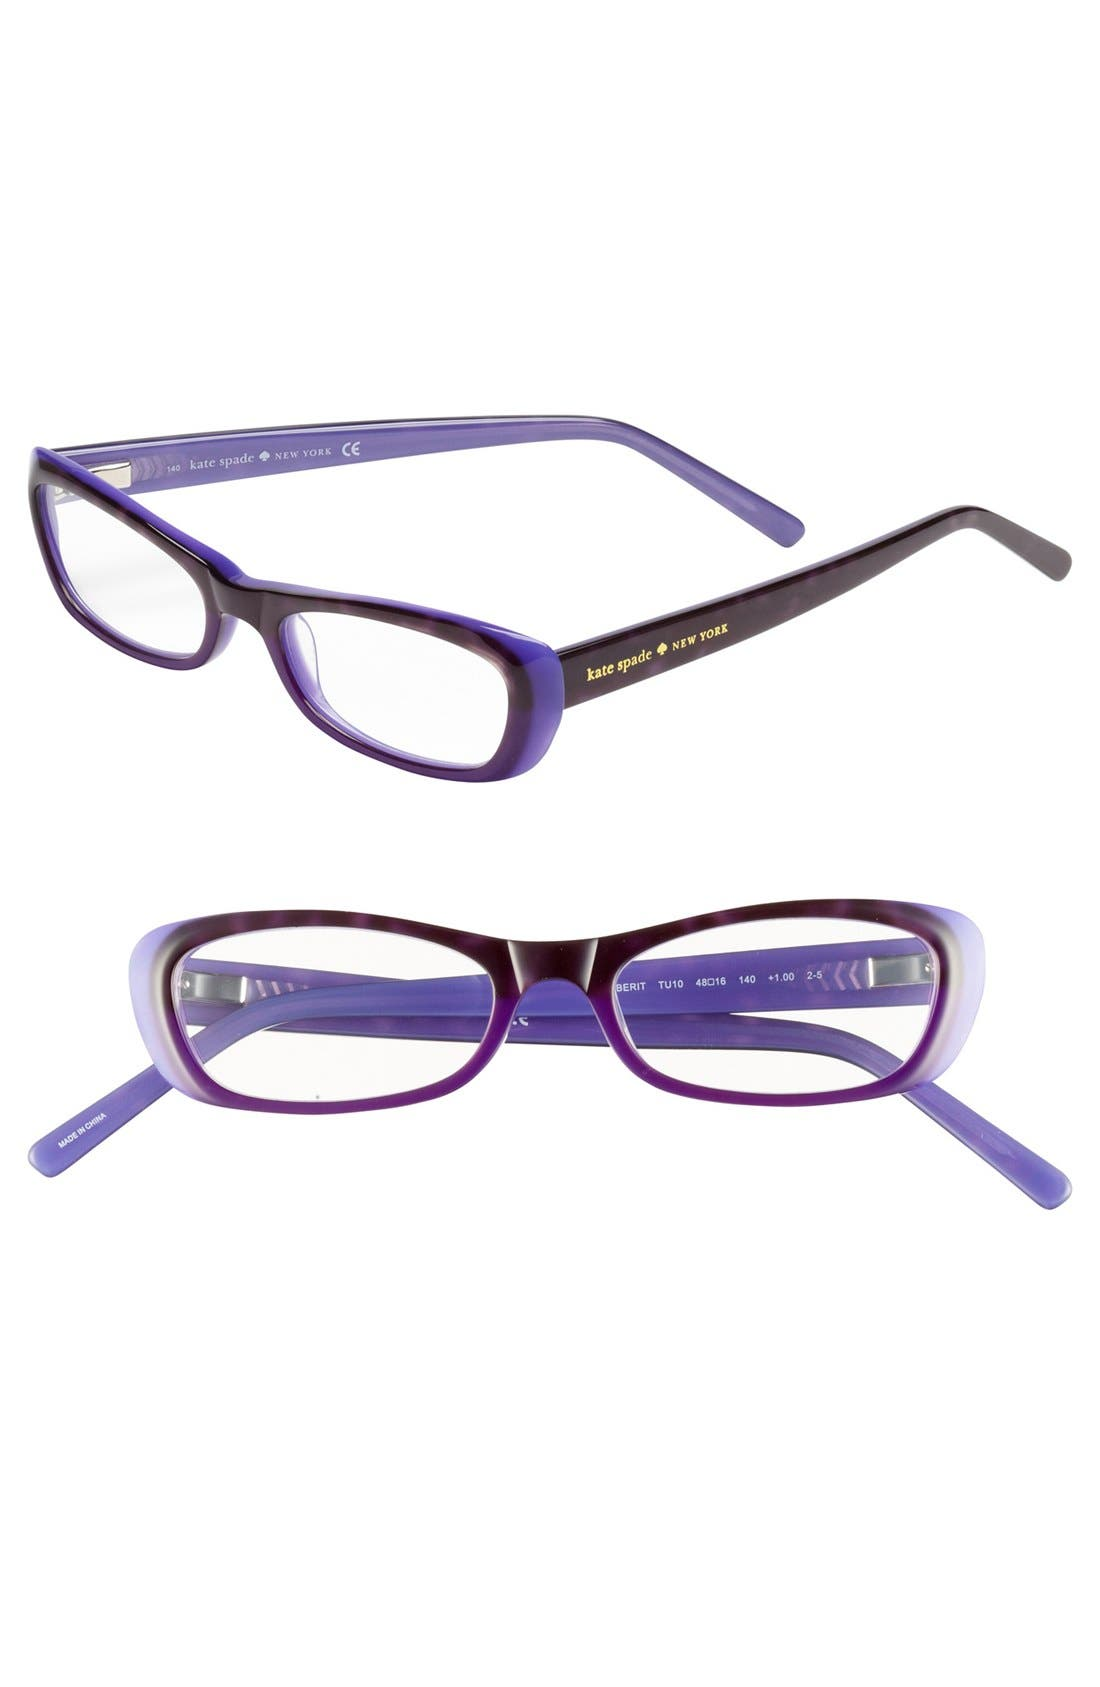 Alternate Image 1 Selected - kate spade new york 'berit' reading glasses (Online Only)